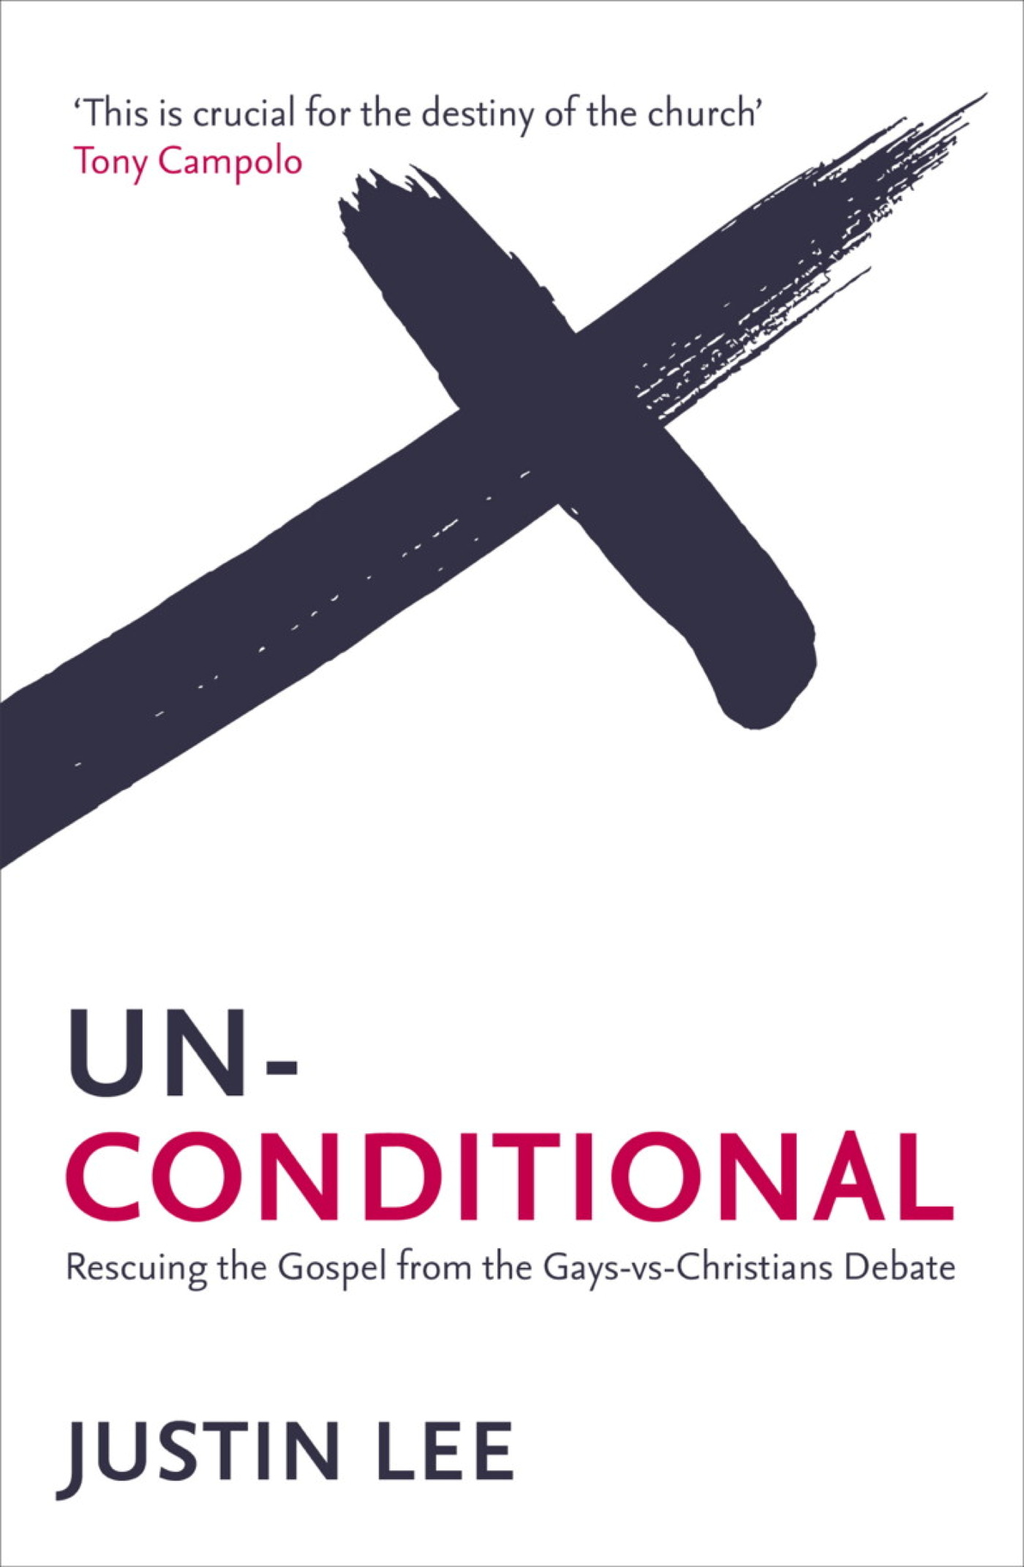 Unconditional Rescuing the Gospel from the Gays-vs-Christians Debate